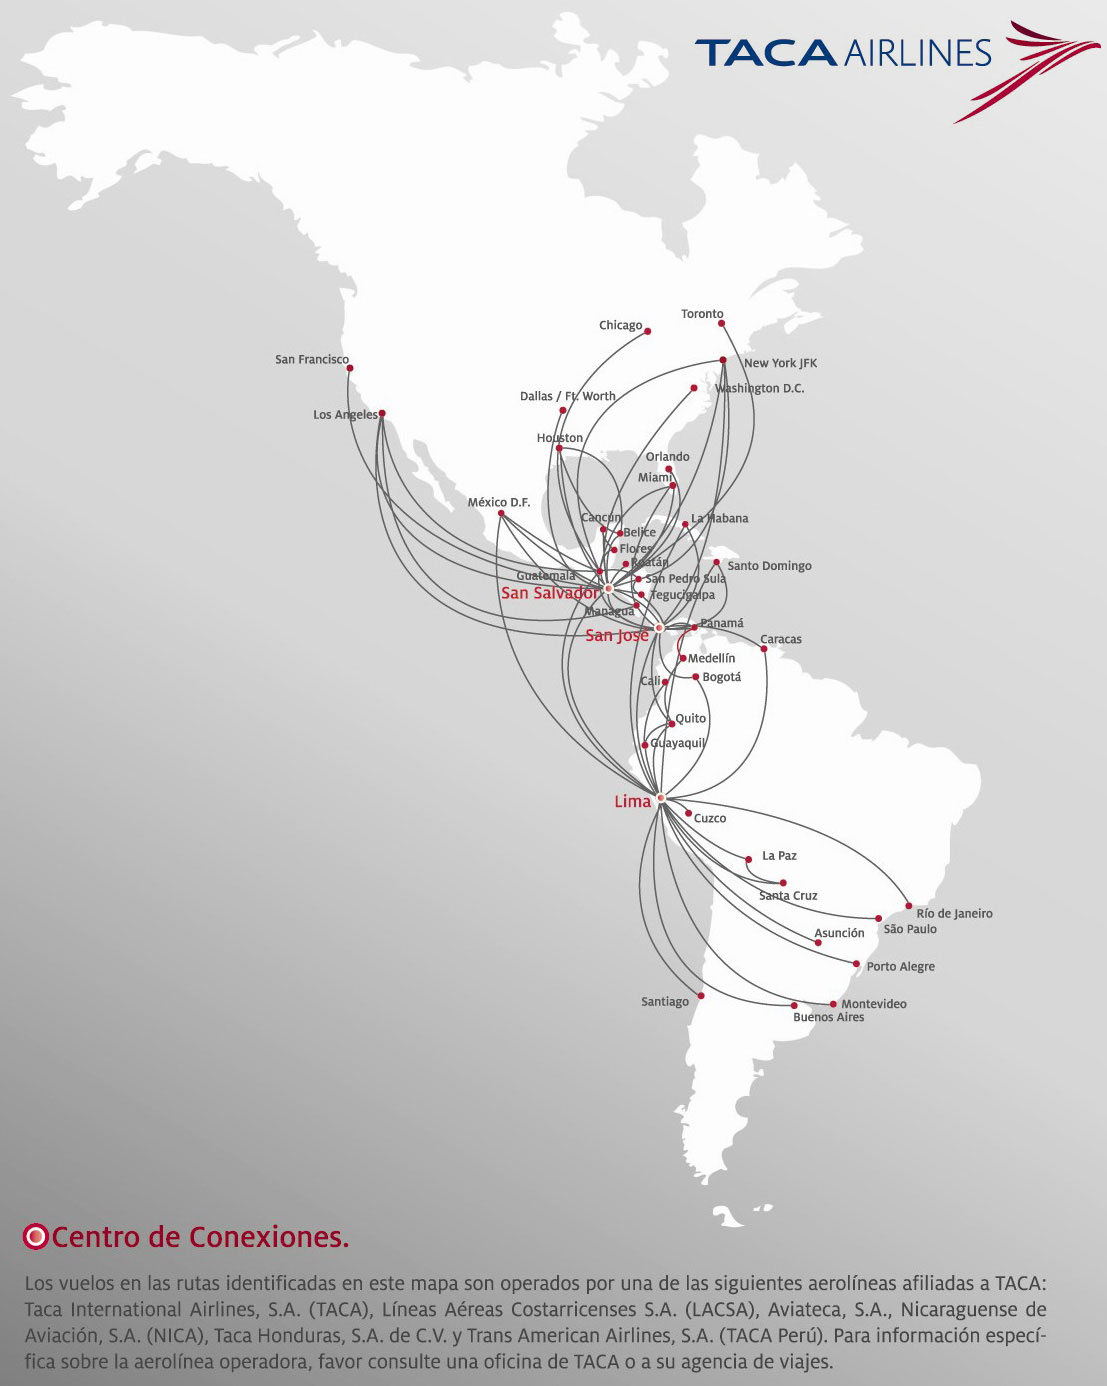 Taca Airlines Route Map